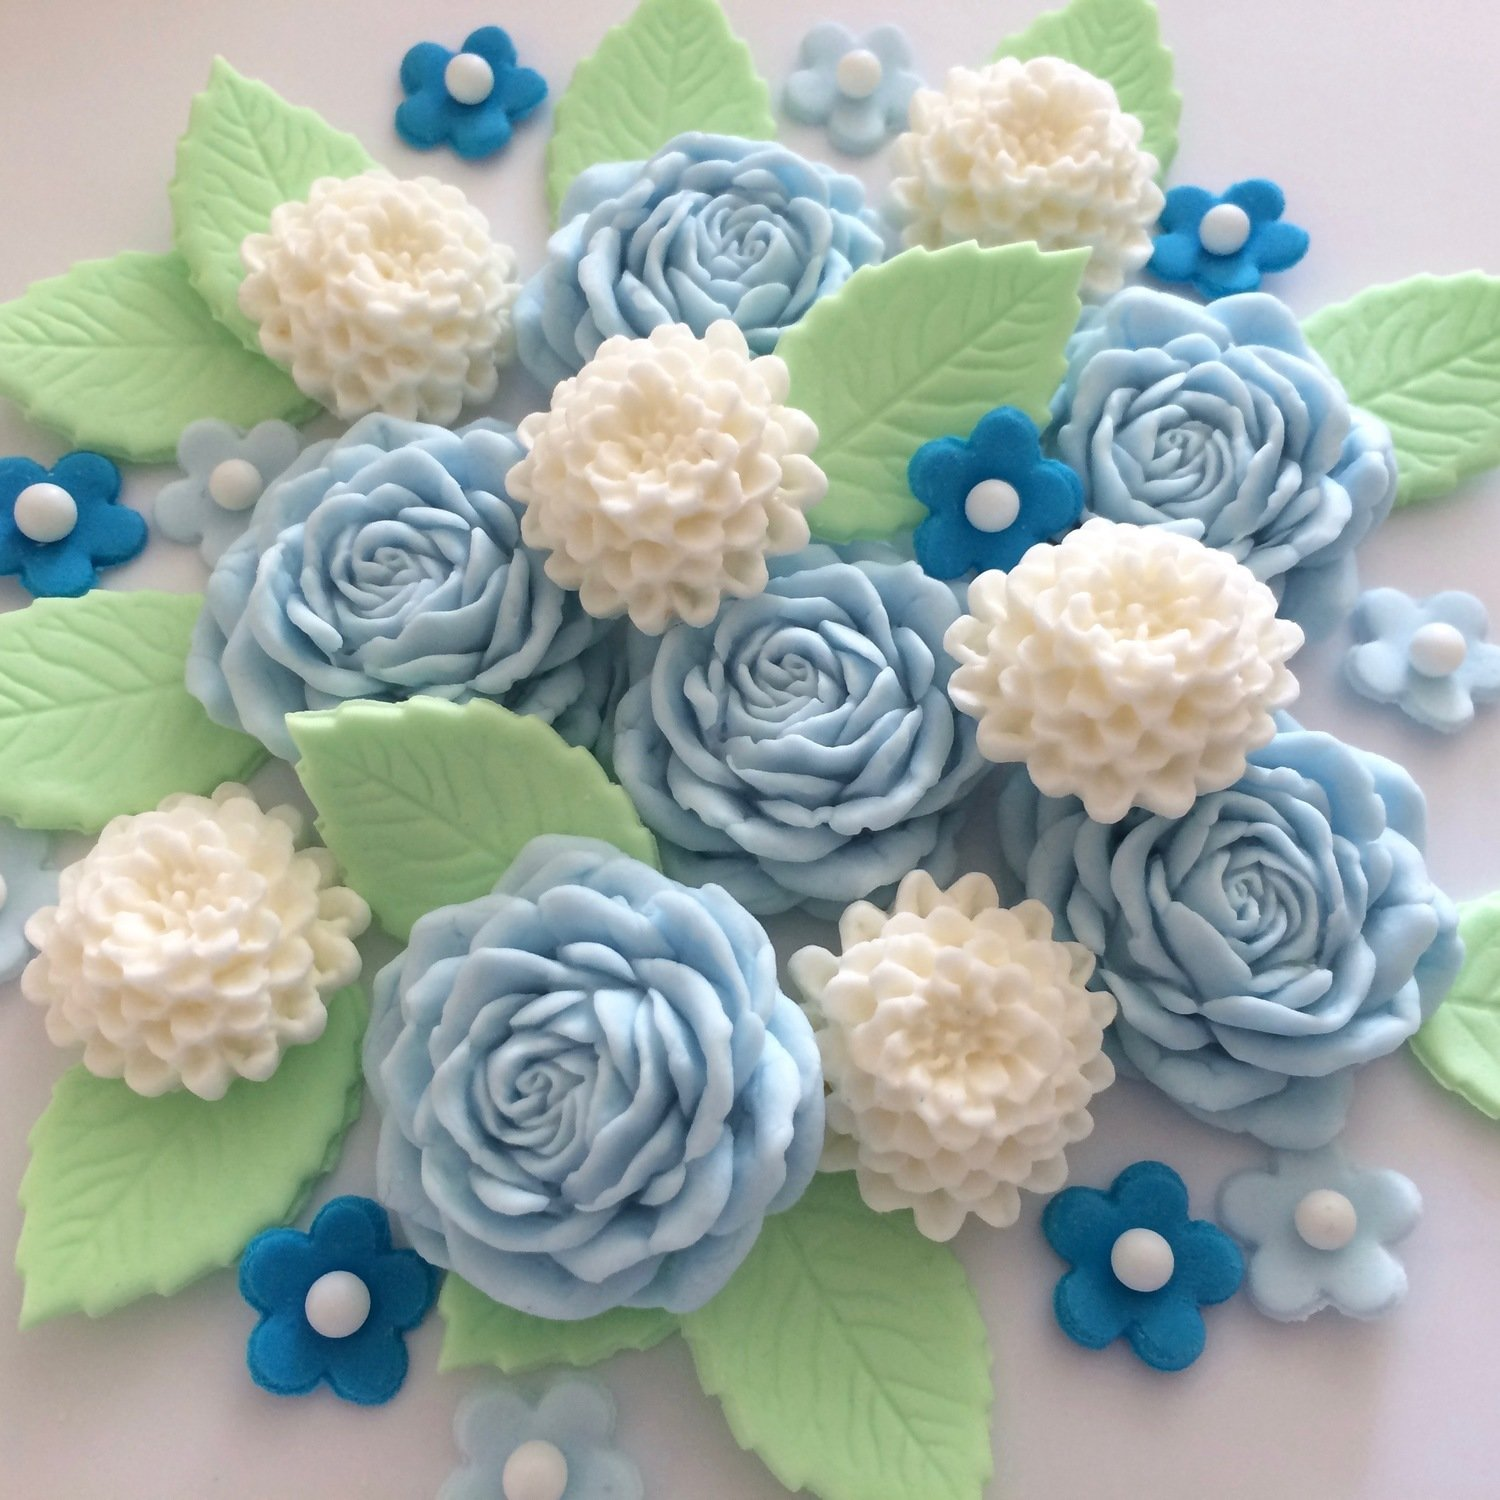 Blue Roses Cream Chrysanthemums